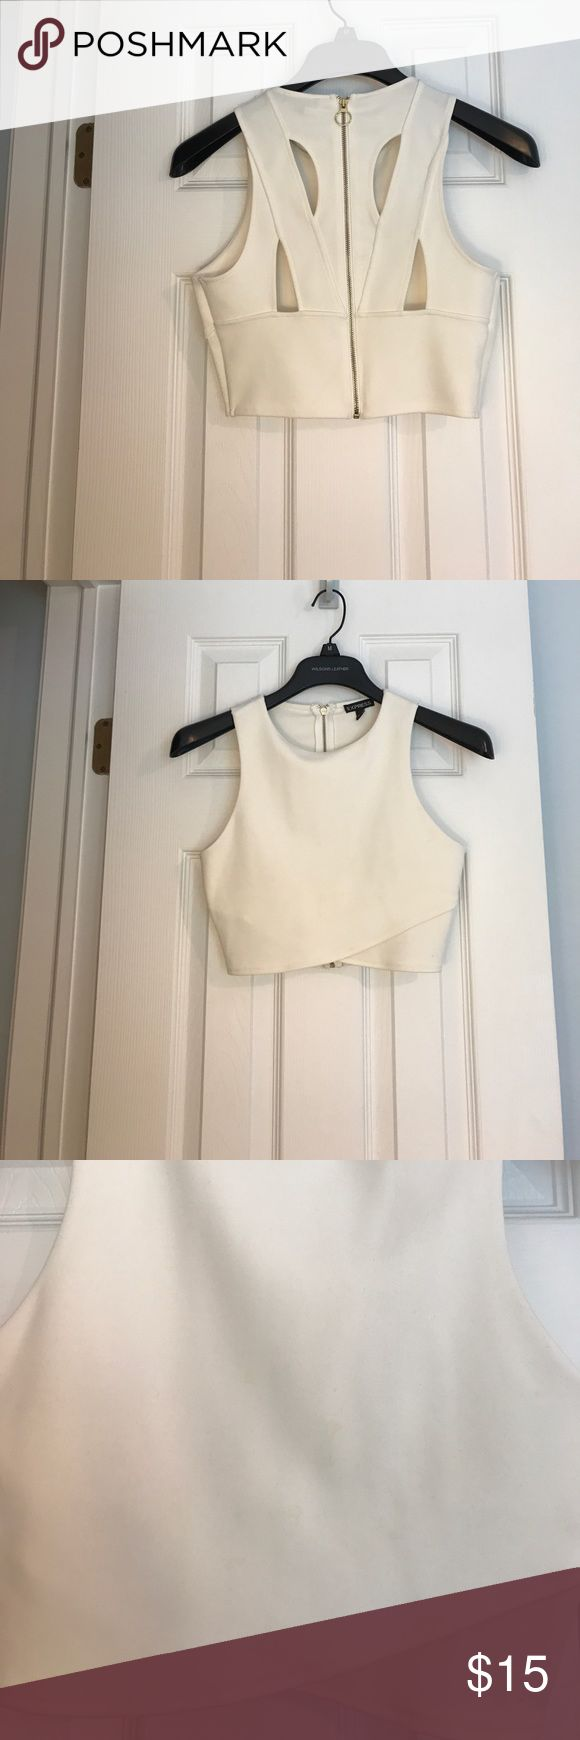 🆕Express crop top White express crop top.. 98% polyester. Small stain on front. Only can see if up really close(see image) probably would come out at a dry cleaner or with some TLC Express Tops Crop Tops